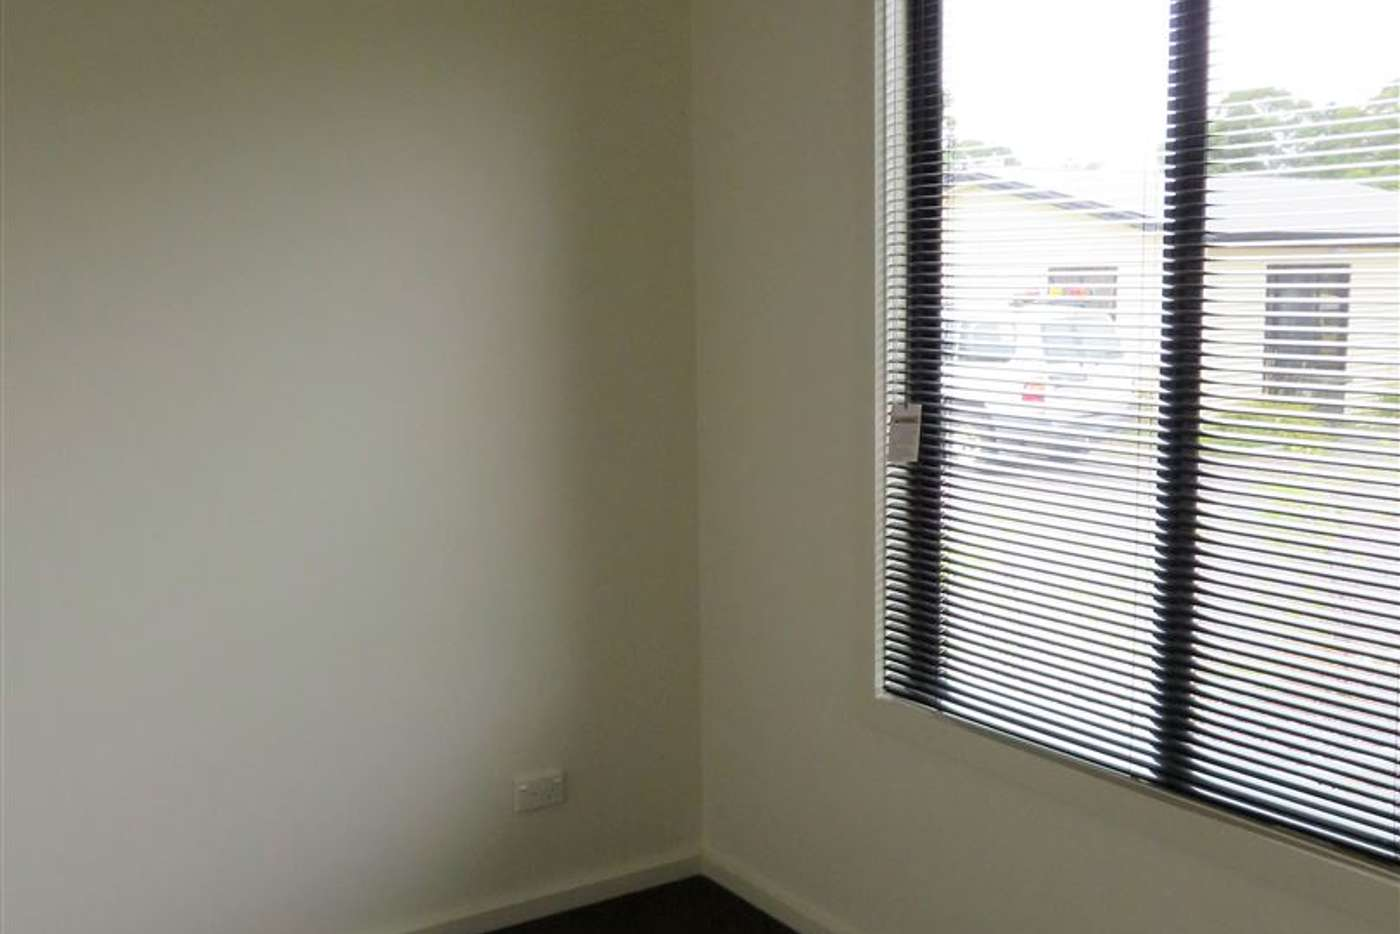 Sixth view of Homely unit listing, 1/15 Gellibrand St, Zeehan TAS 7469